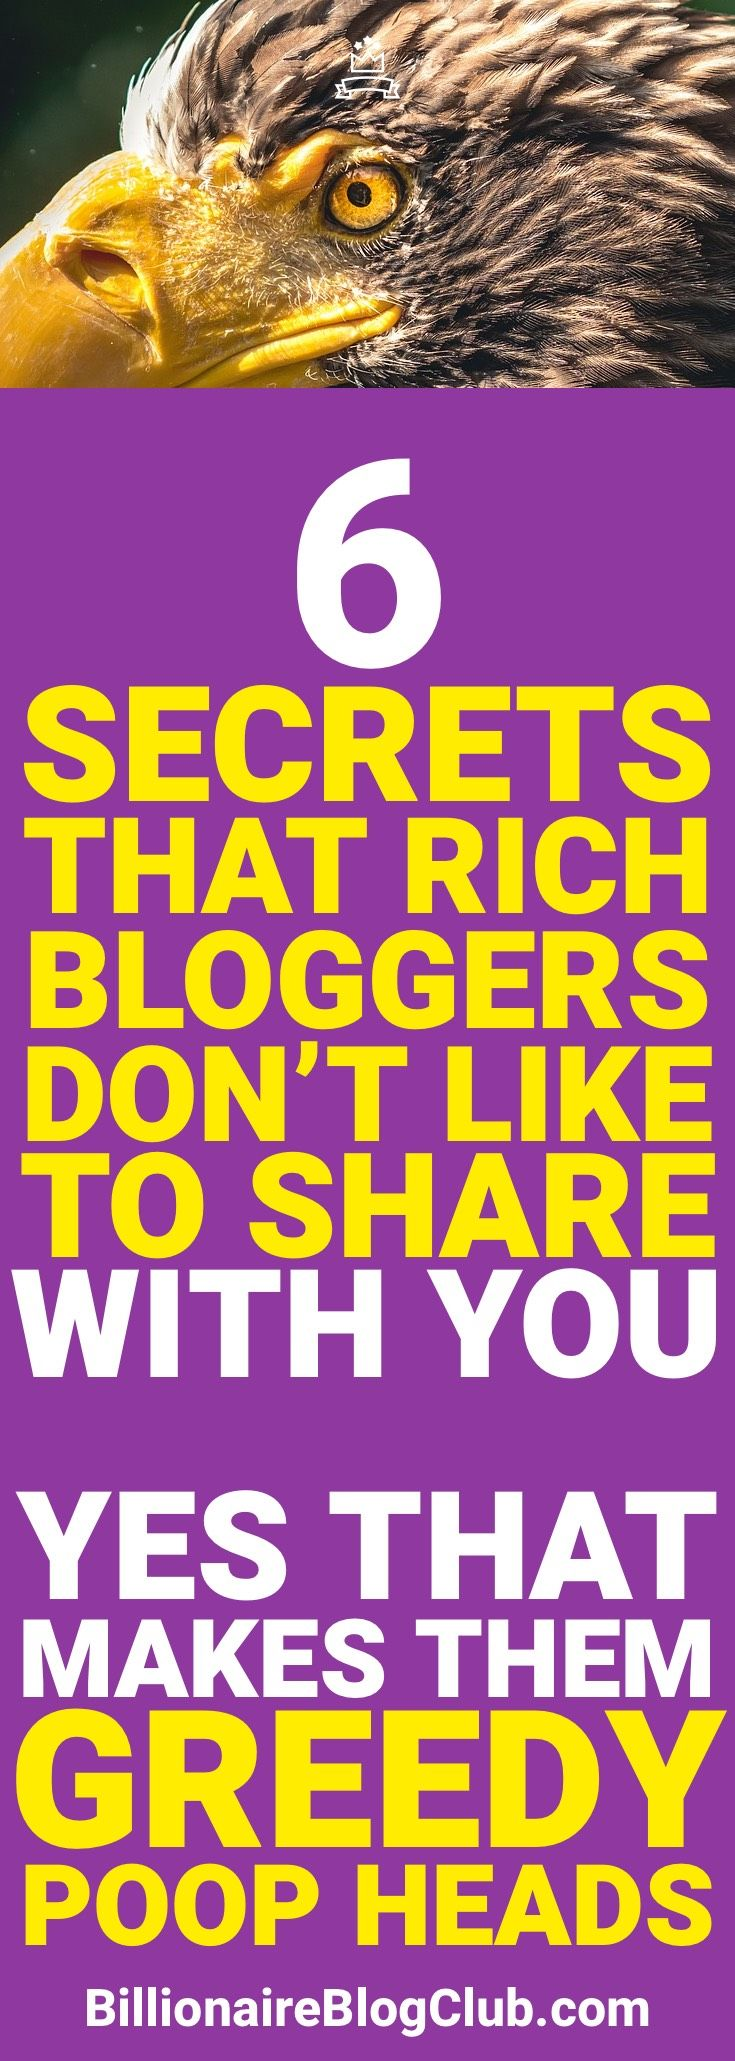 Want to learn the secrets of making money with a blog? Well, here are some that the rich bloggers try to hide.